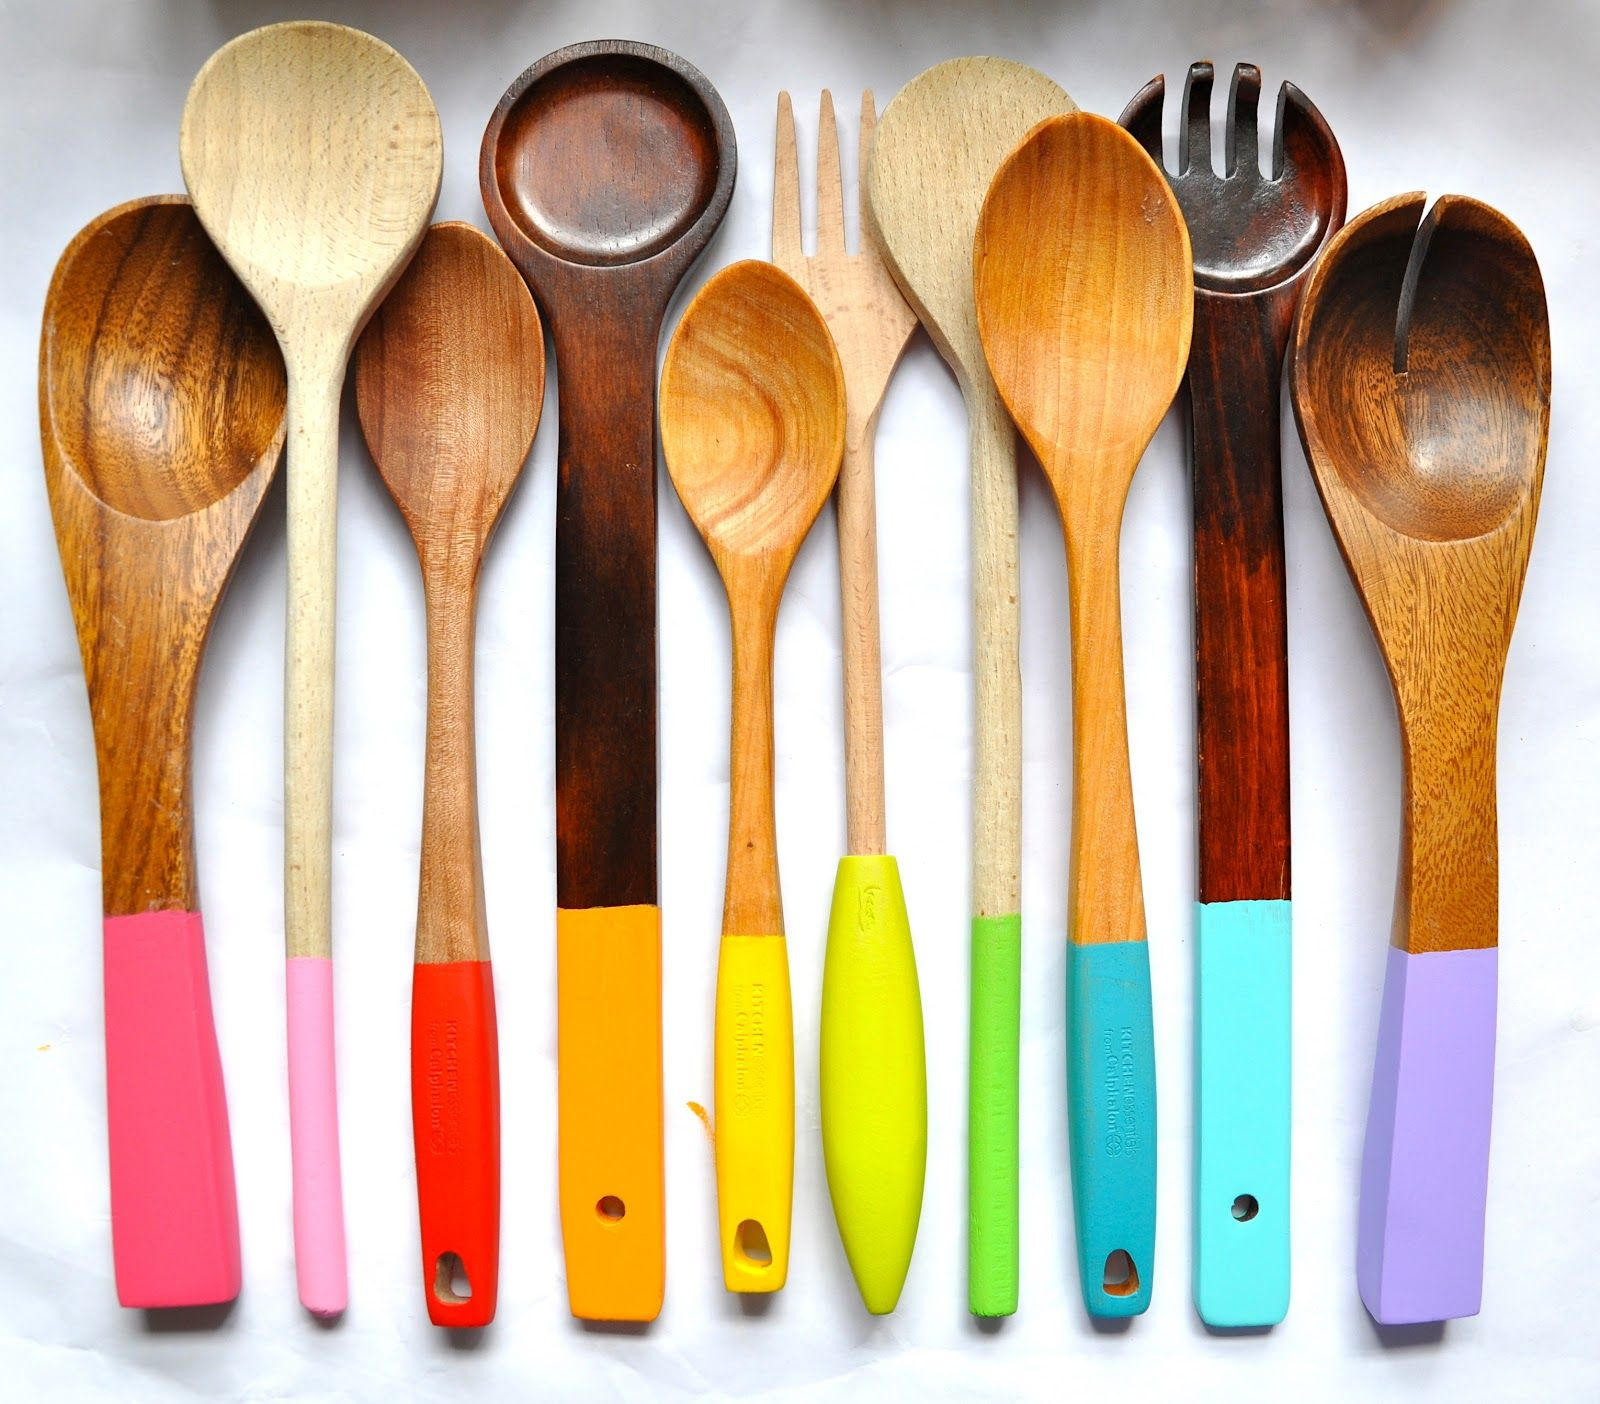 Crafts top 6 spring diy projects wooden spoon spoon for Cheap wooden spoons for crafts